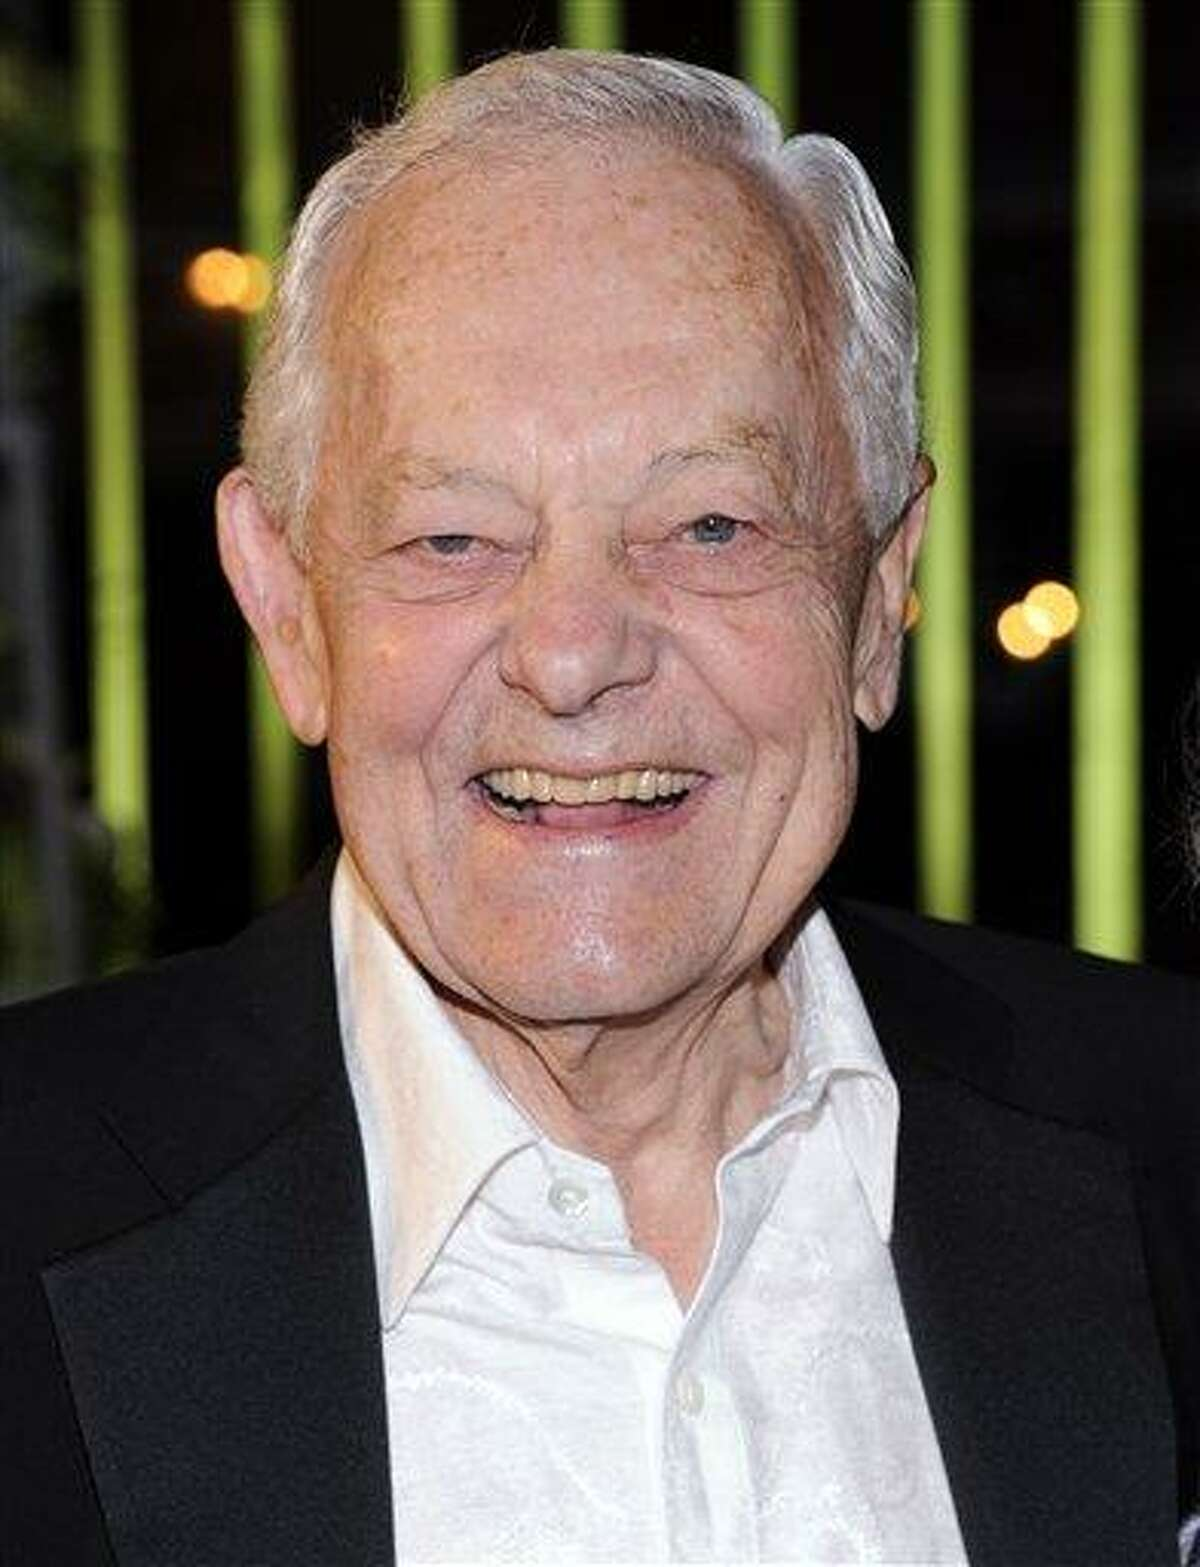 Bob Schieffer will be the moderator of Monday's final presidential debate. AP Photo/Evan Agostini